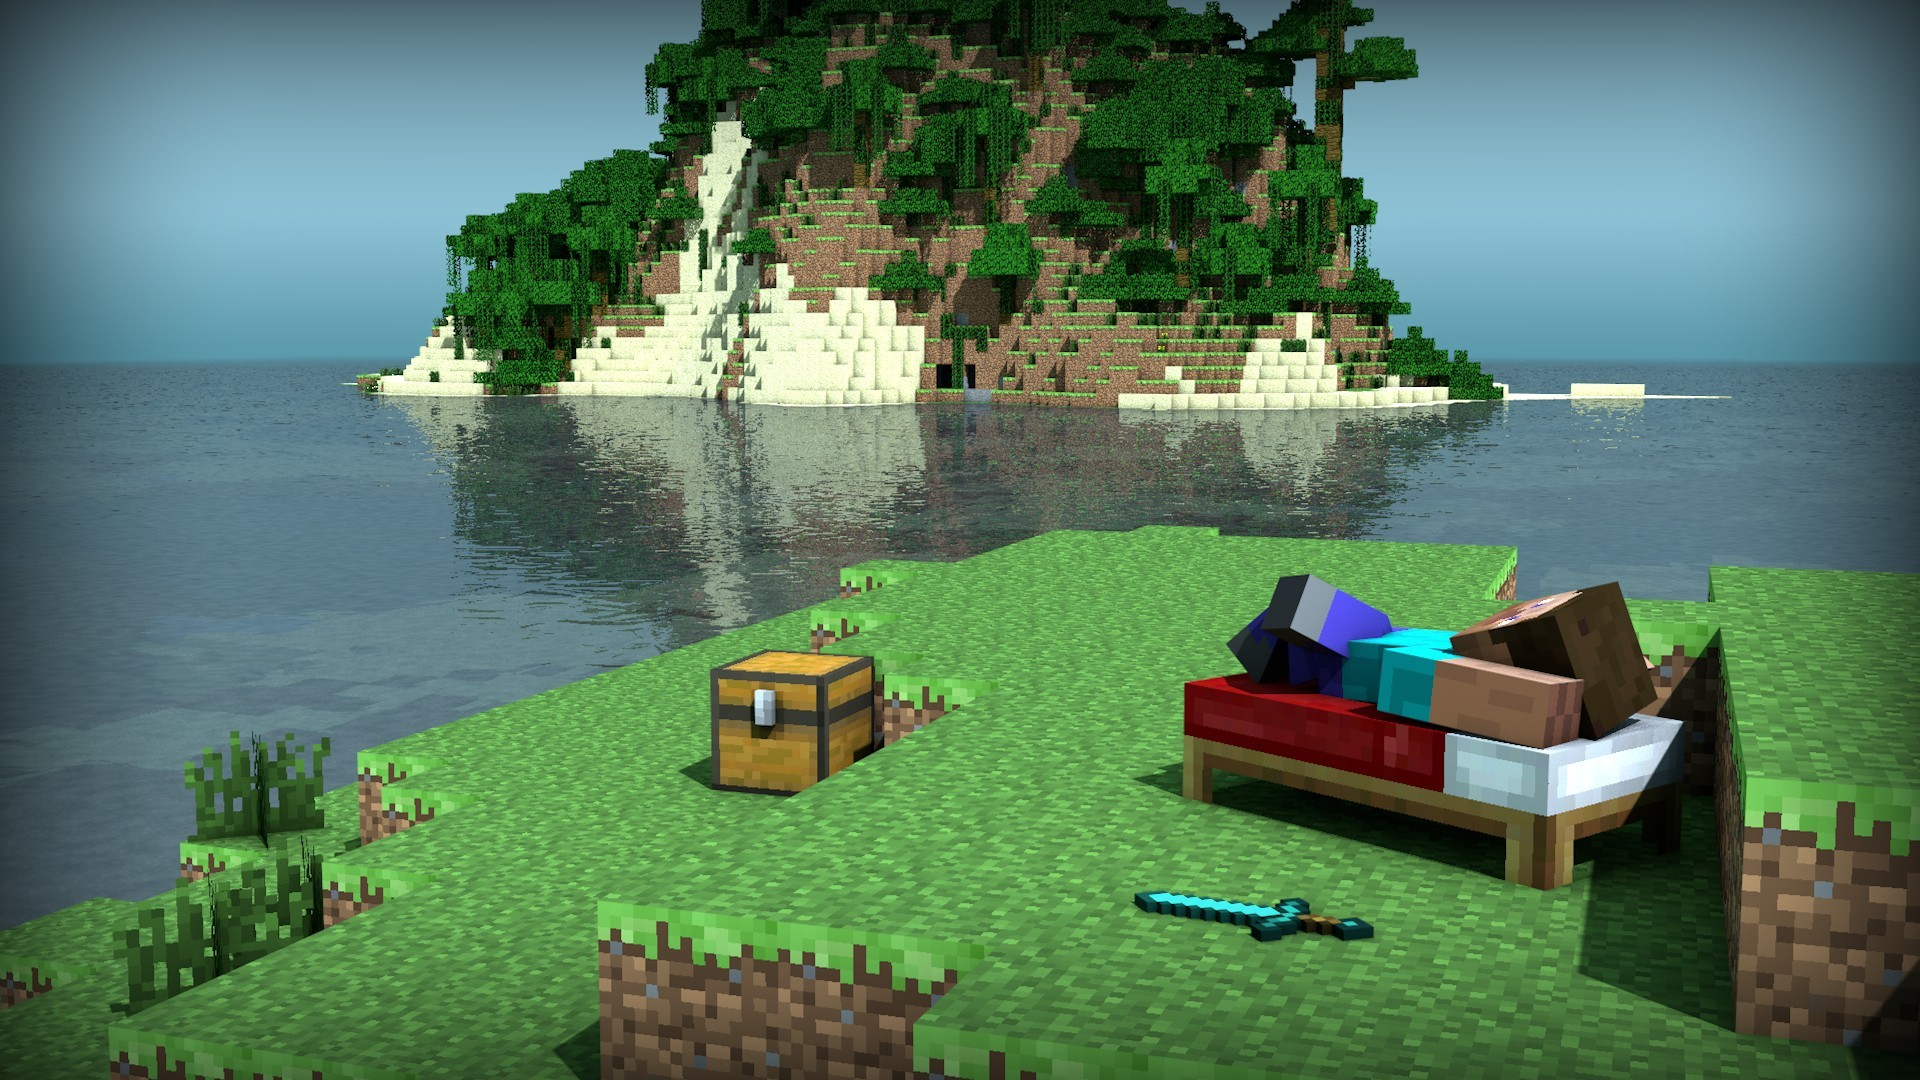 1920x1200 Cool Minecraft Backgrounds Wallpaper 1920A 1200 Wallpapers 28